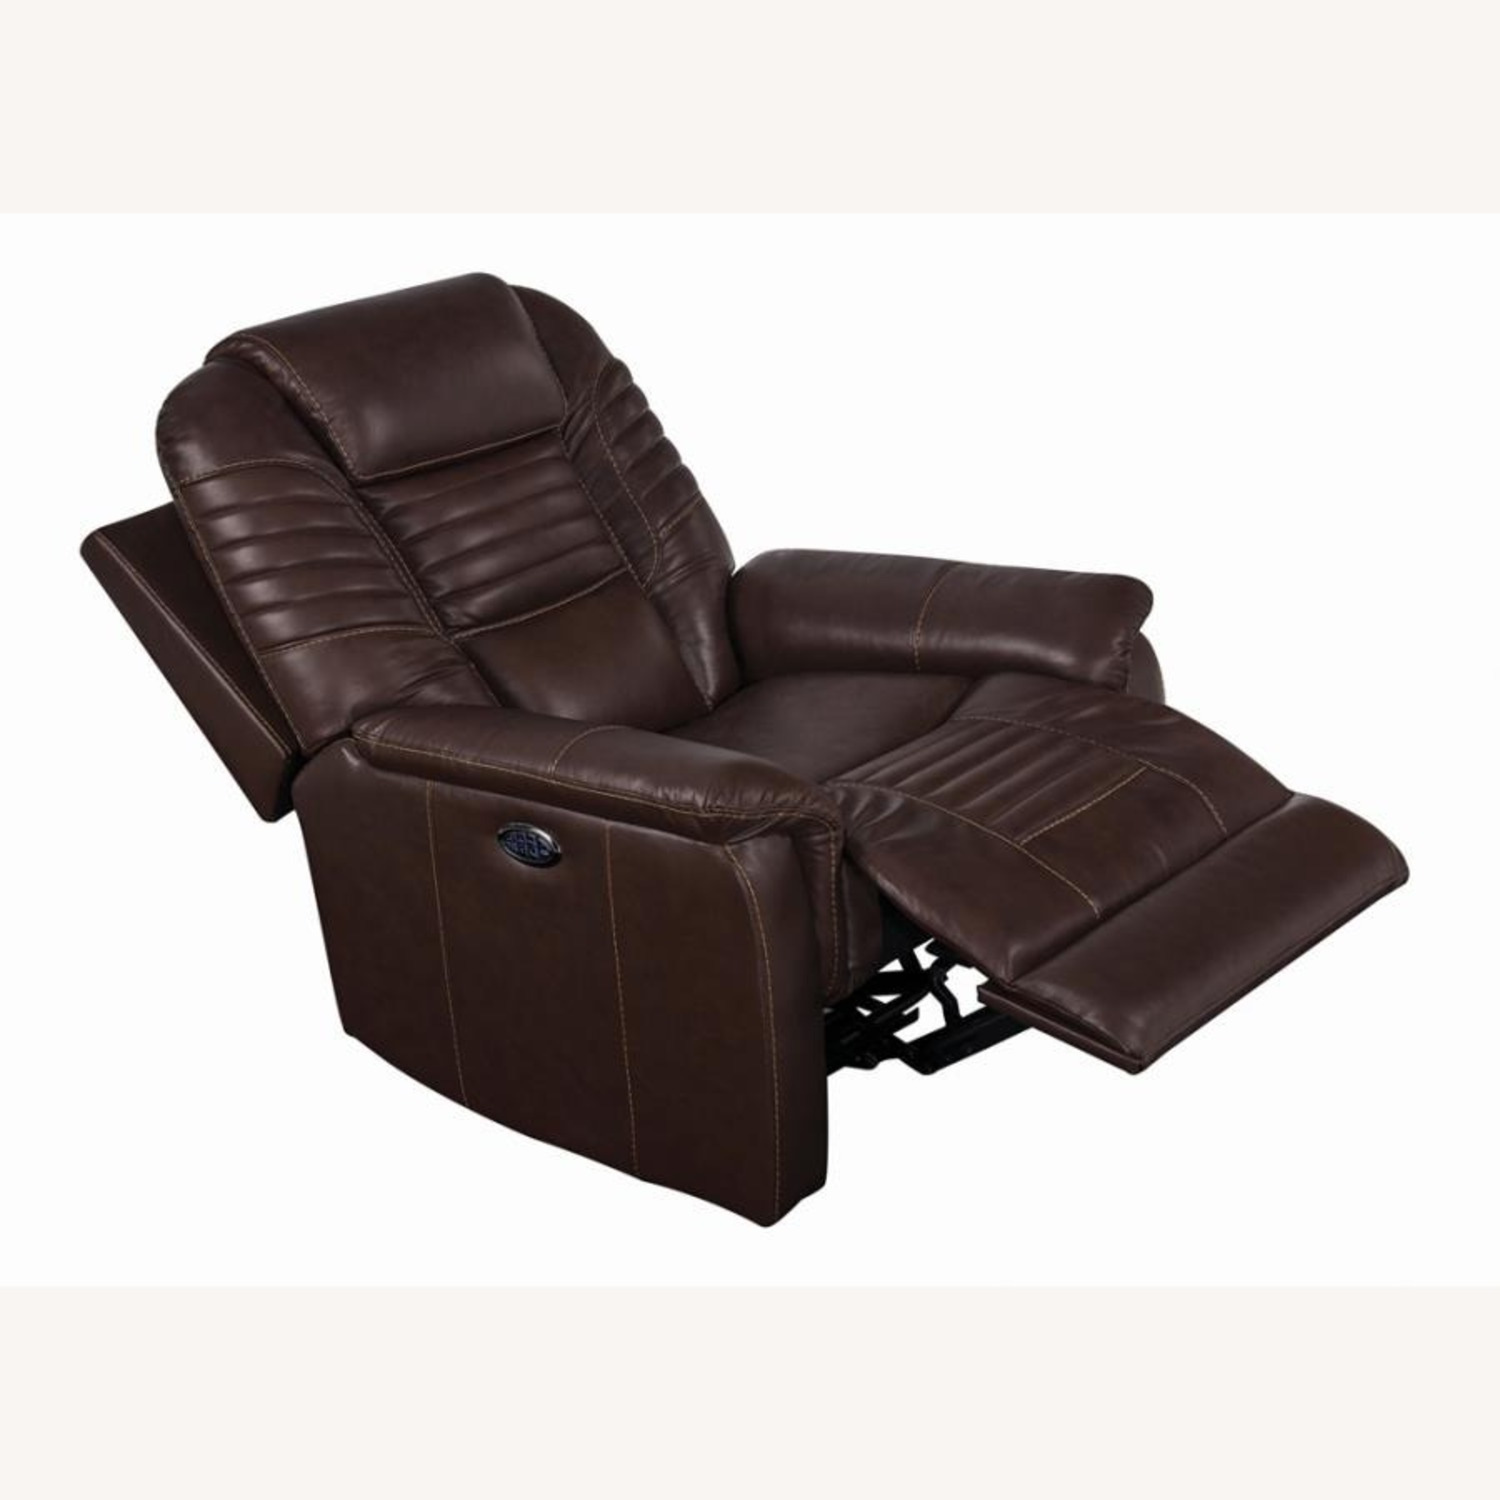 Power Recliner In Cozy Brown Leather Upholstery - image-1